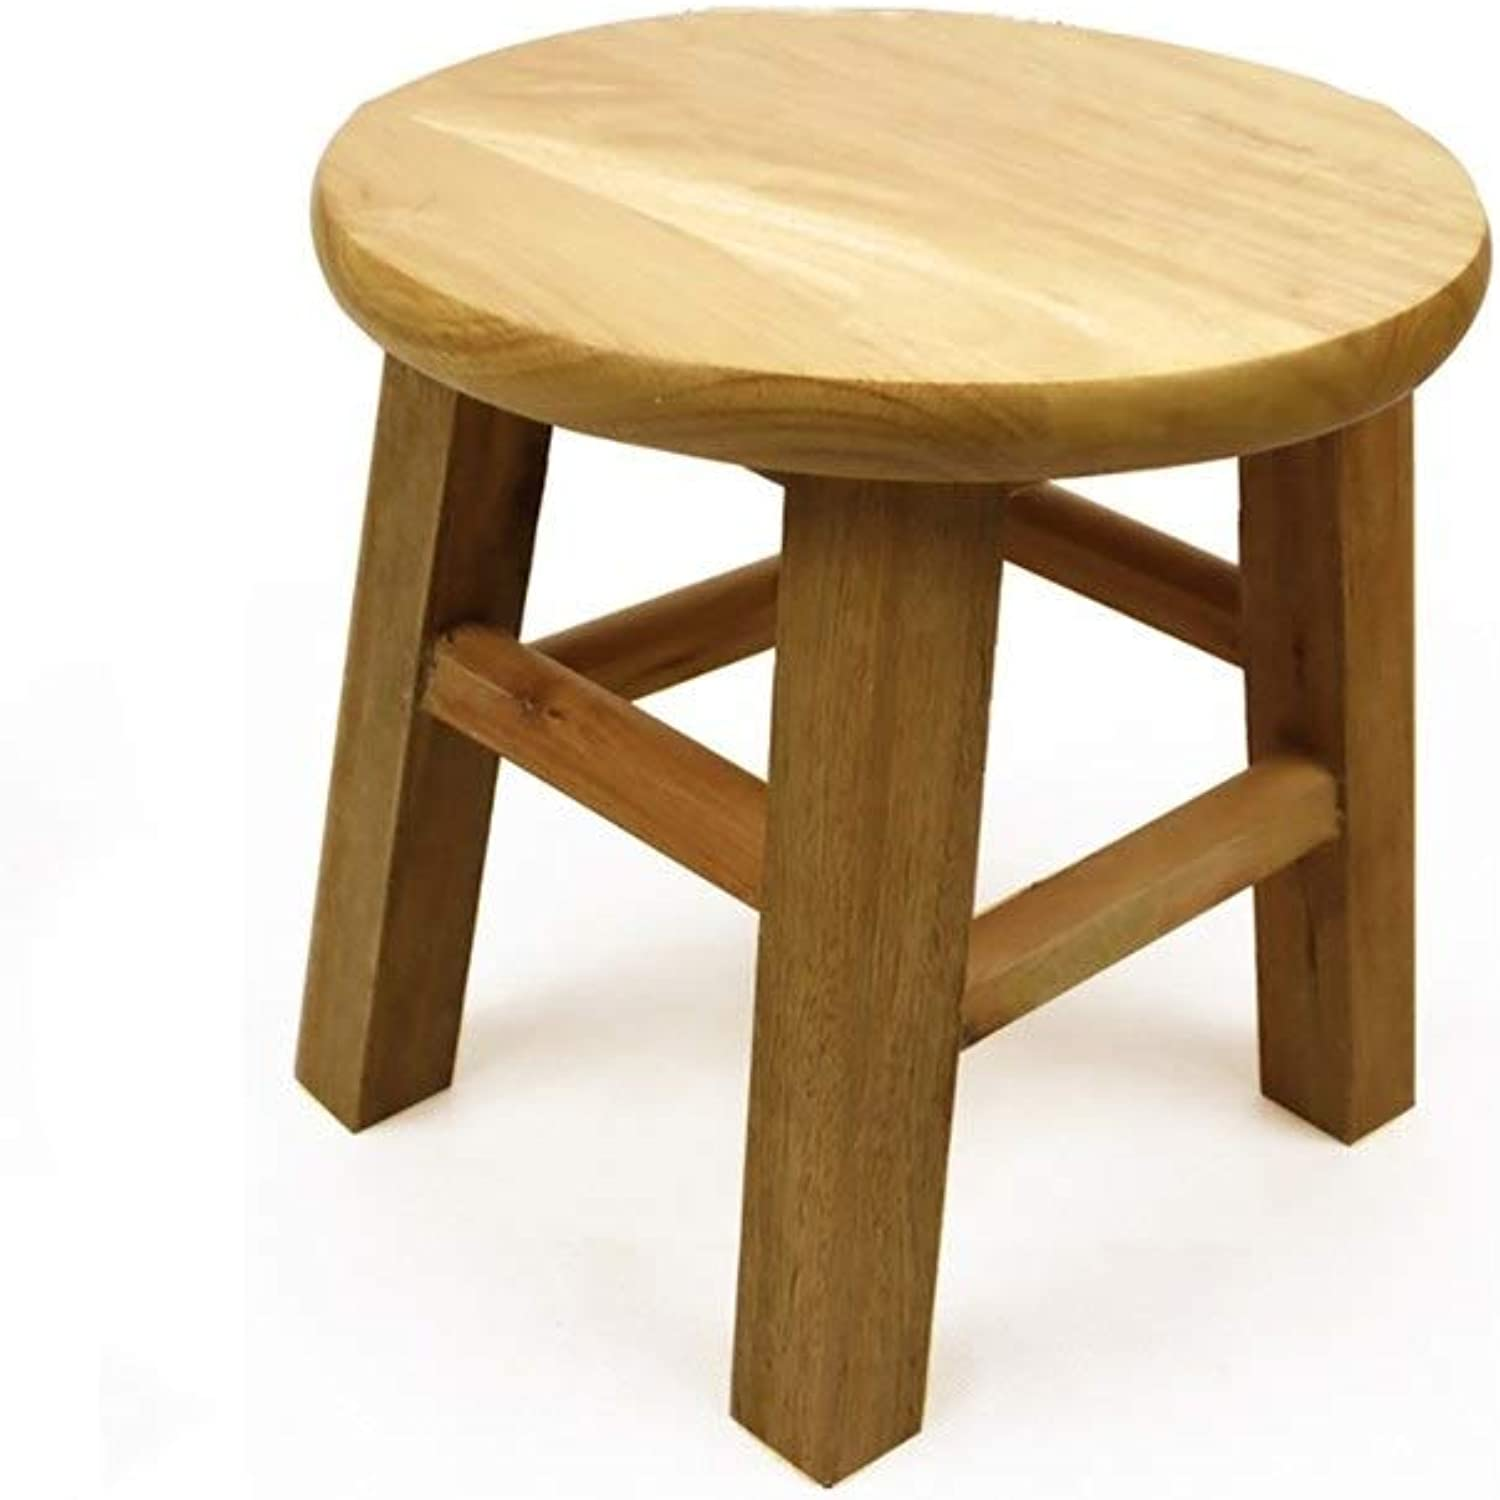 European Chair Solid Wood Stool, Round Stool Small Board Table Stool Dining Stool Household Foot Foot Stool